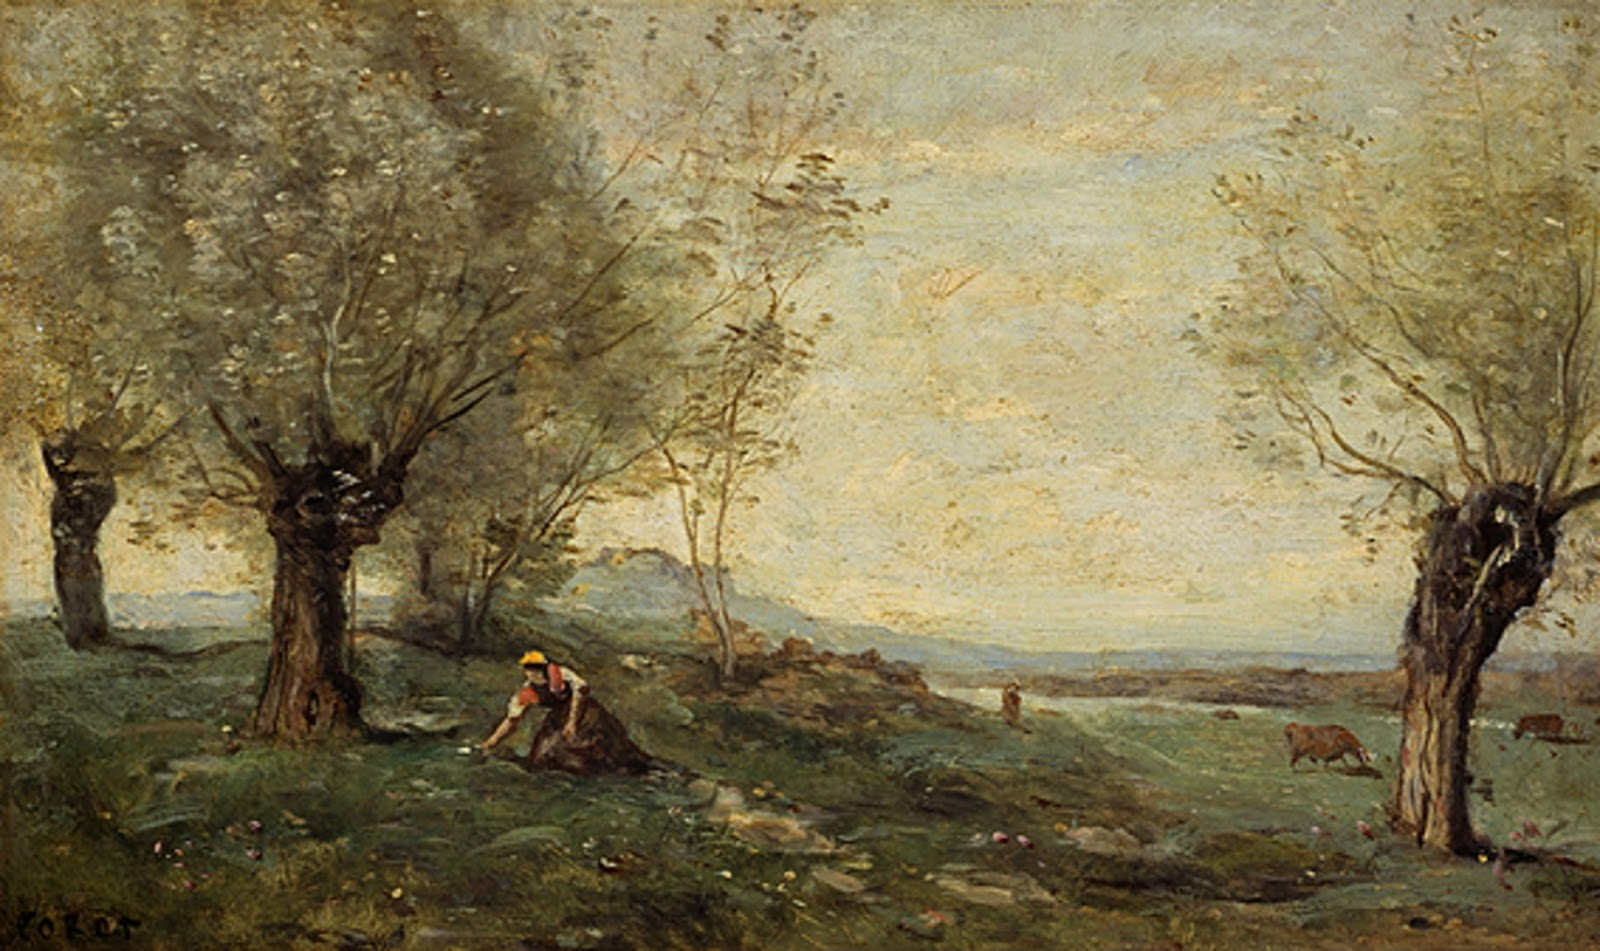 jean baptise camille corot Jean-baptiste-camille corot (french, 1796-1875) after an apprenticeship of five years in a drapery business, jean baptiste corot studied painting from 1822 to 1825, first under the painter michallon, then under the classical landscape painter victor bertin, and copying works by joseph verner and others, including the 17th century dutch masters.